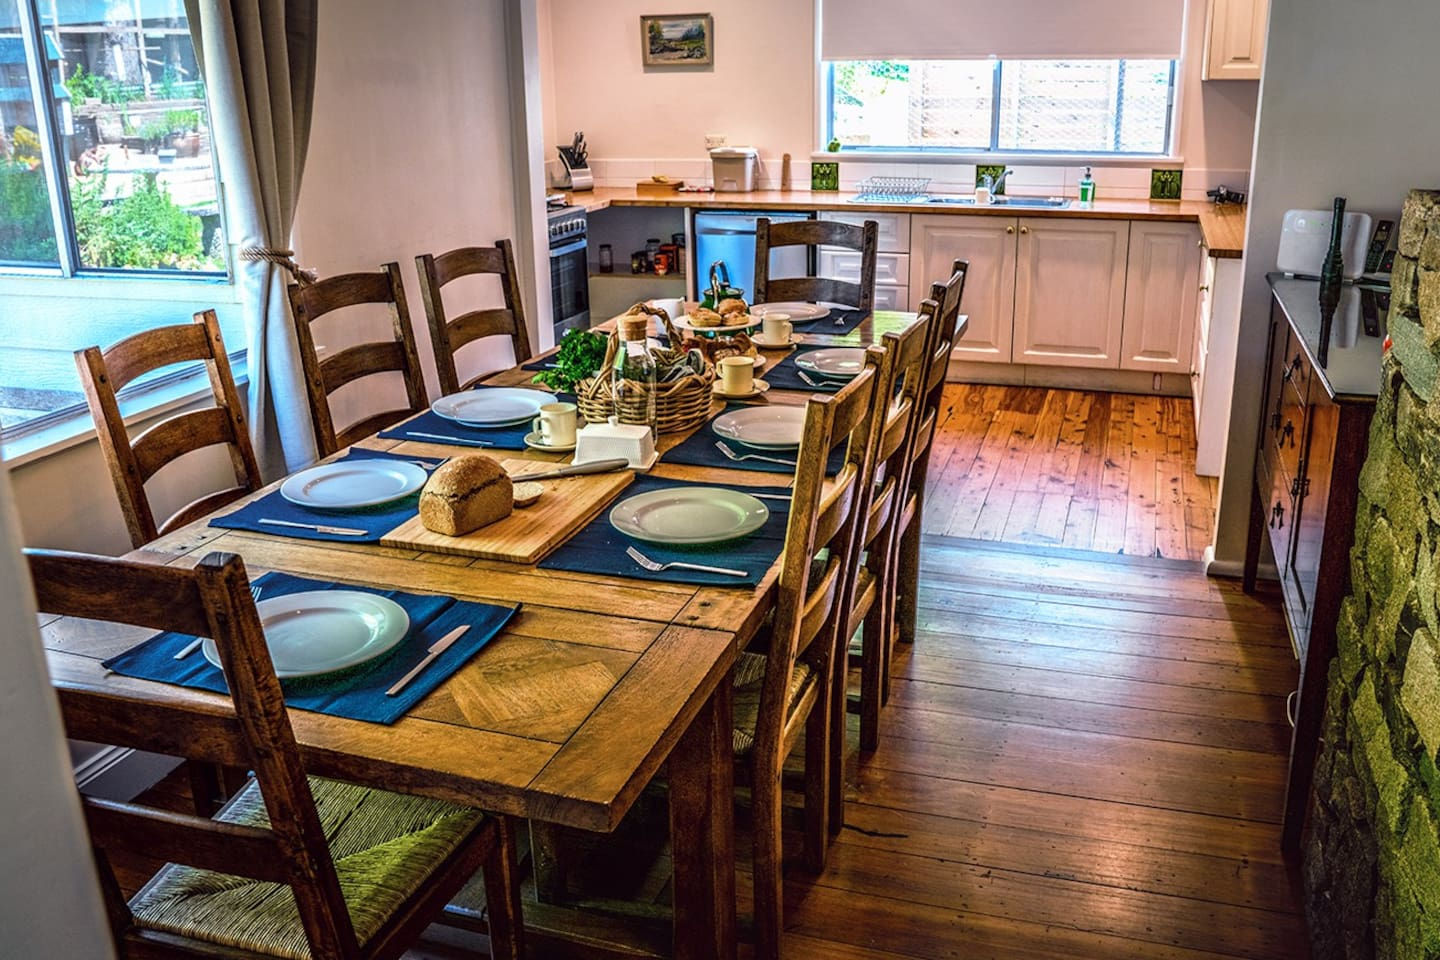 Spacious farmhouse table comfortably seating 8 people